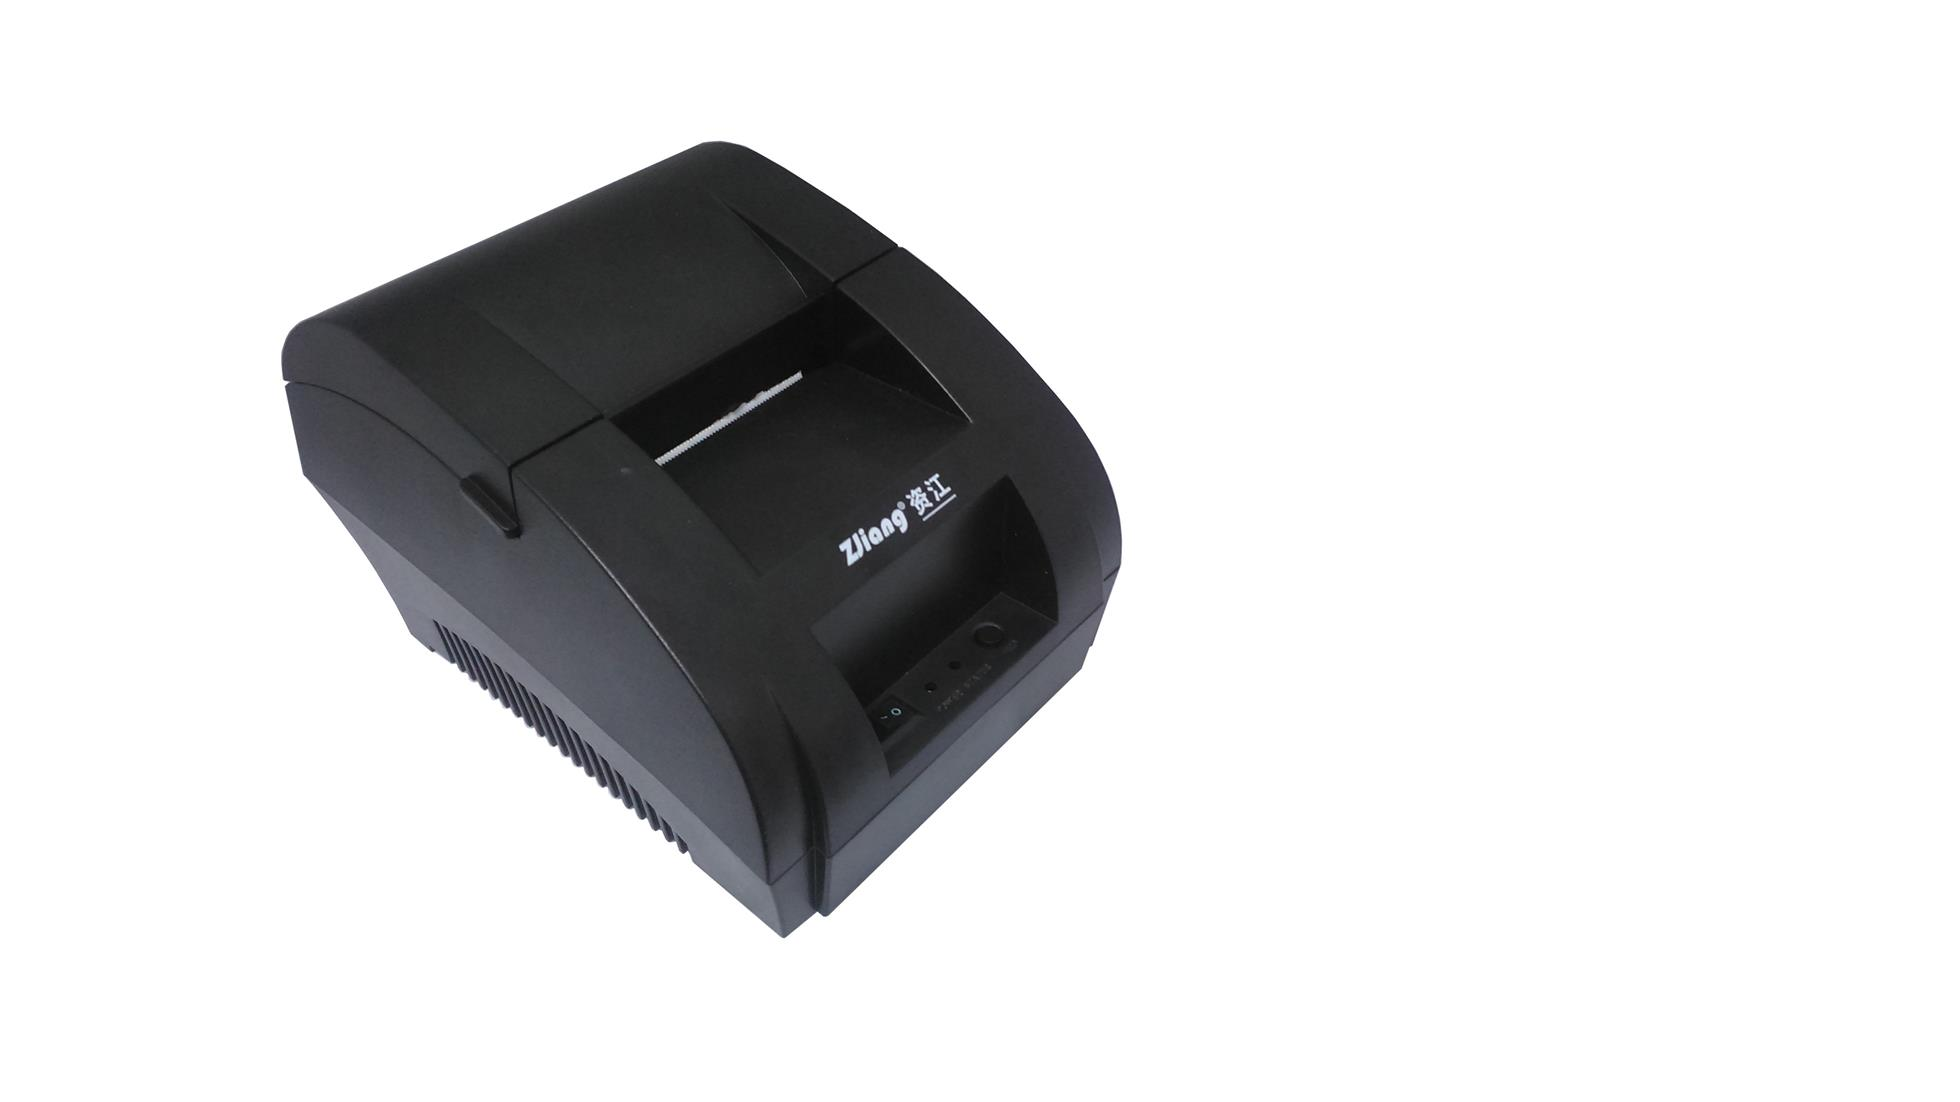 Laser Barcode Scanner + Thermal Receipt Printer Zjiang + Cash Drawer